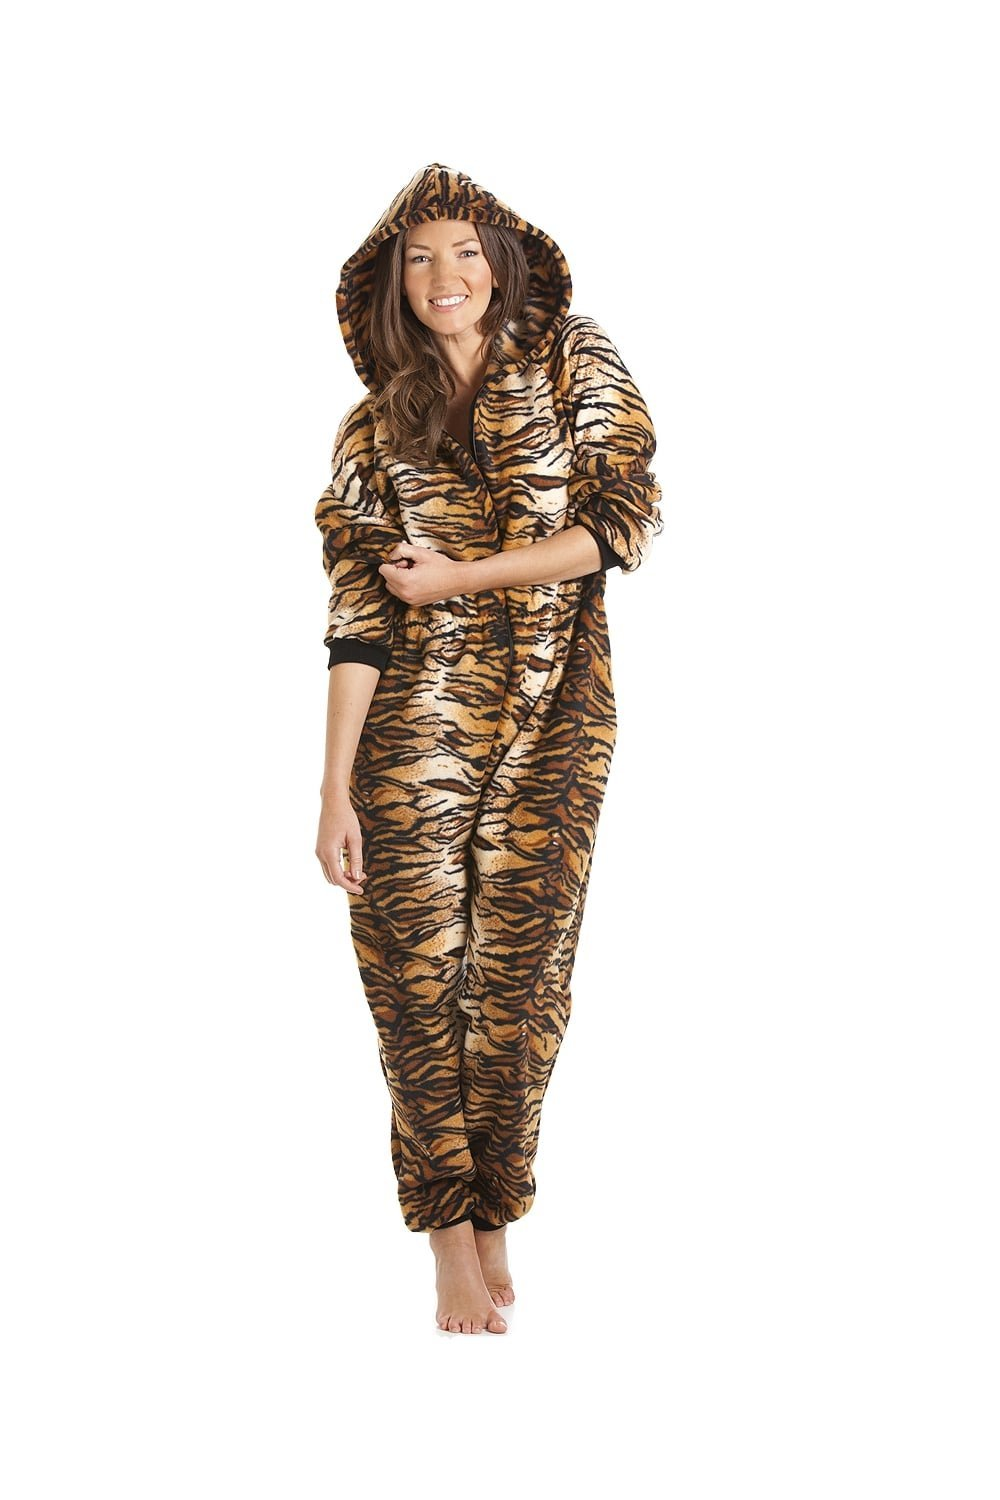 Camille Womens Luxury Gold And Brown Tiger Print Hooded Soft Fleece Onesie